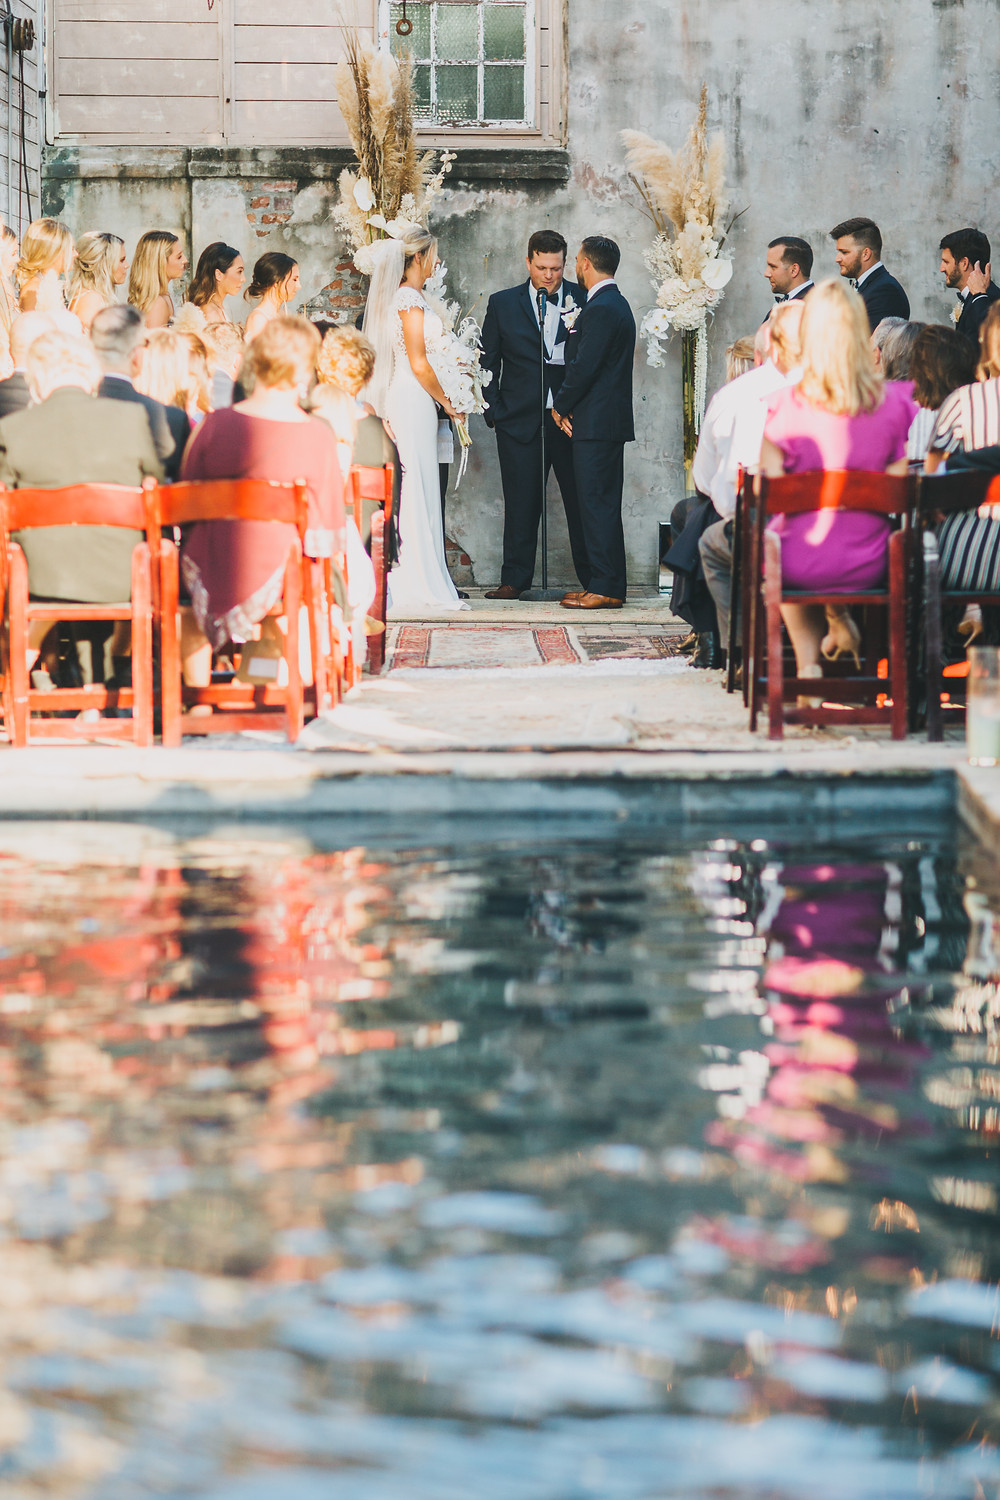 Lovegood Wedding & Event Rentals, New Orleans Vintage Rental Company for Corporate, Parties, and Weddings | Lounge Furniture in NOLA, Specialty Rentals, Decor across the Southeast, Boho Ceremony with Aisle of Rugs